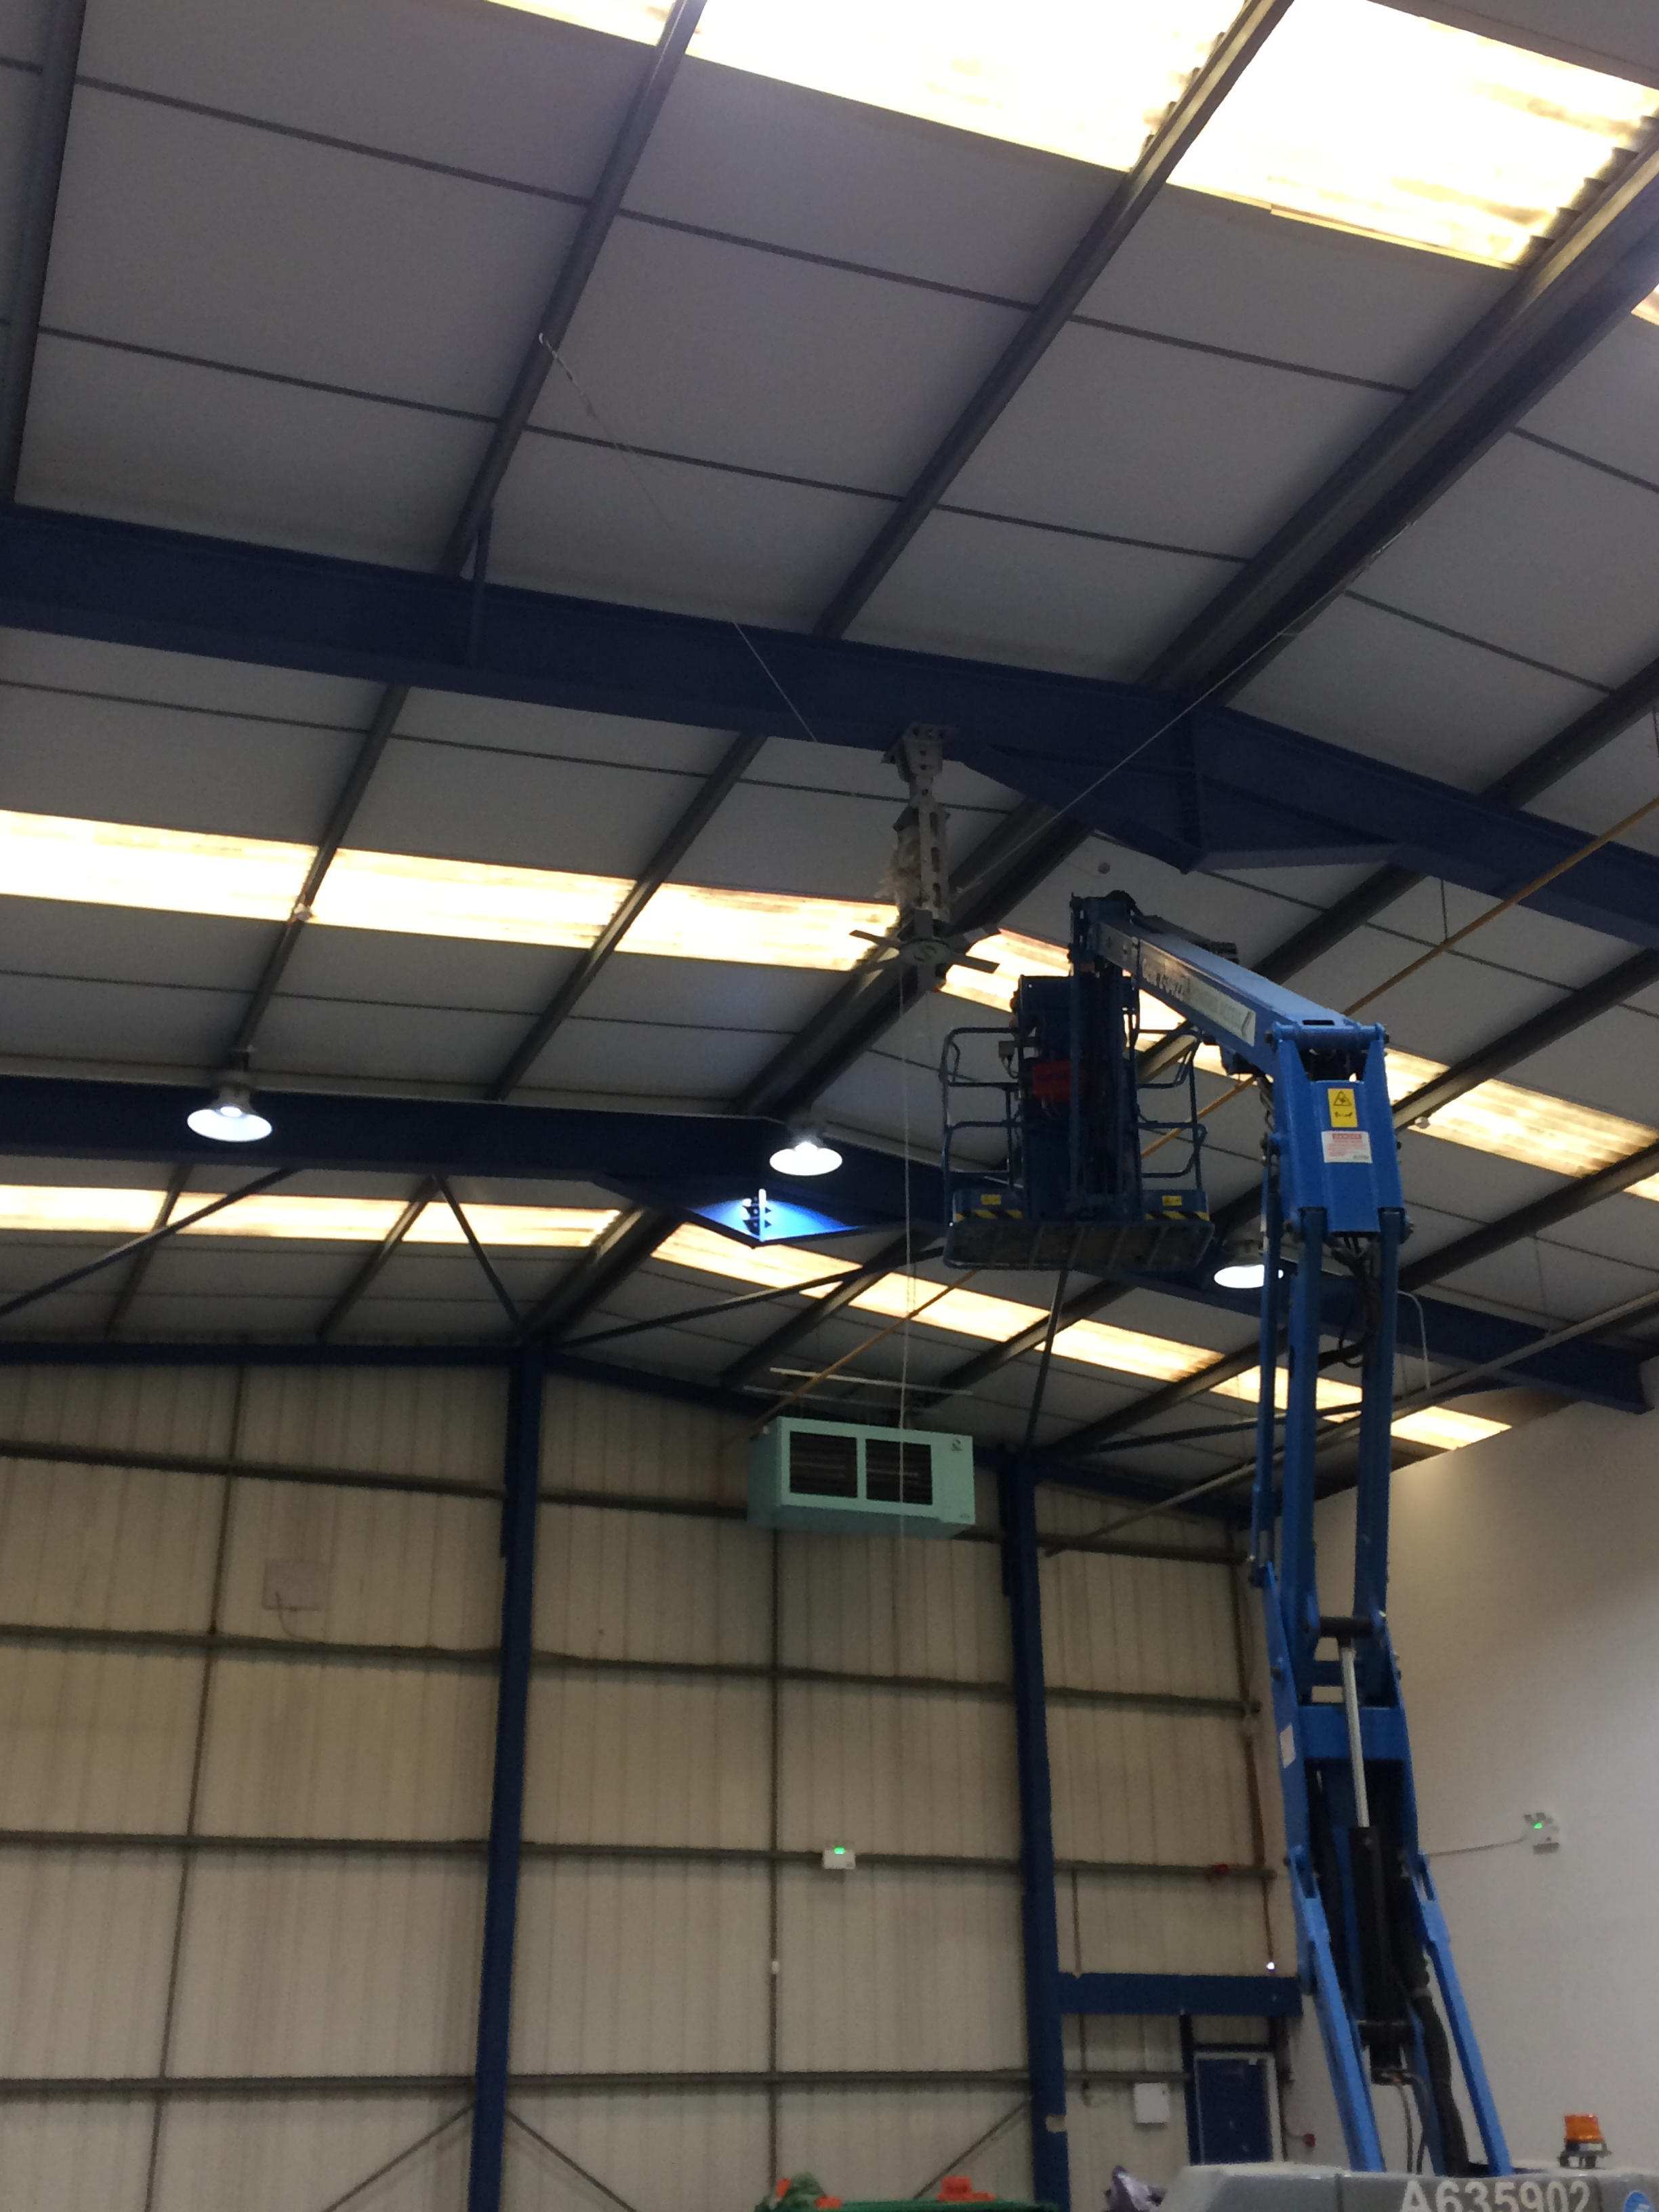 Top Jump Trampoline Park Milton Keynes Gas Heaters Air